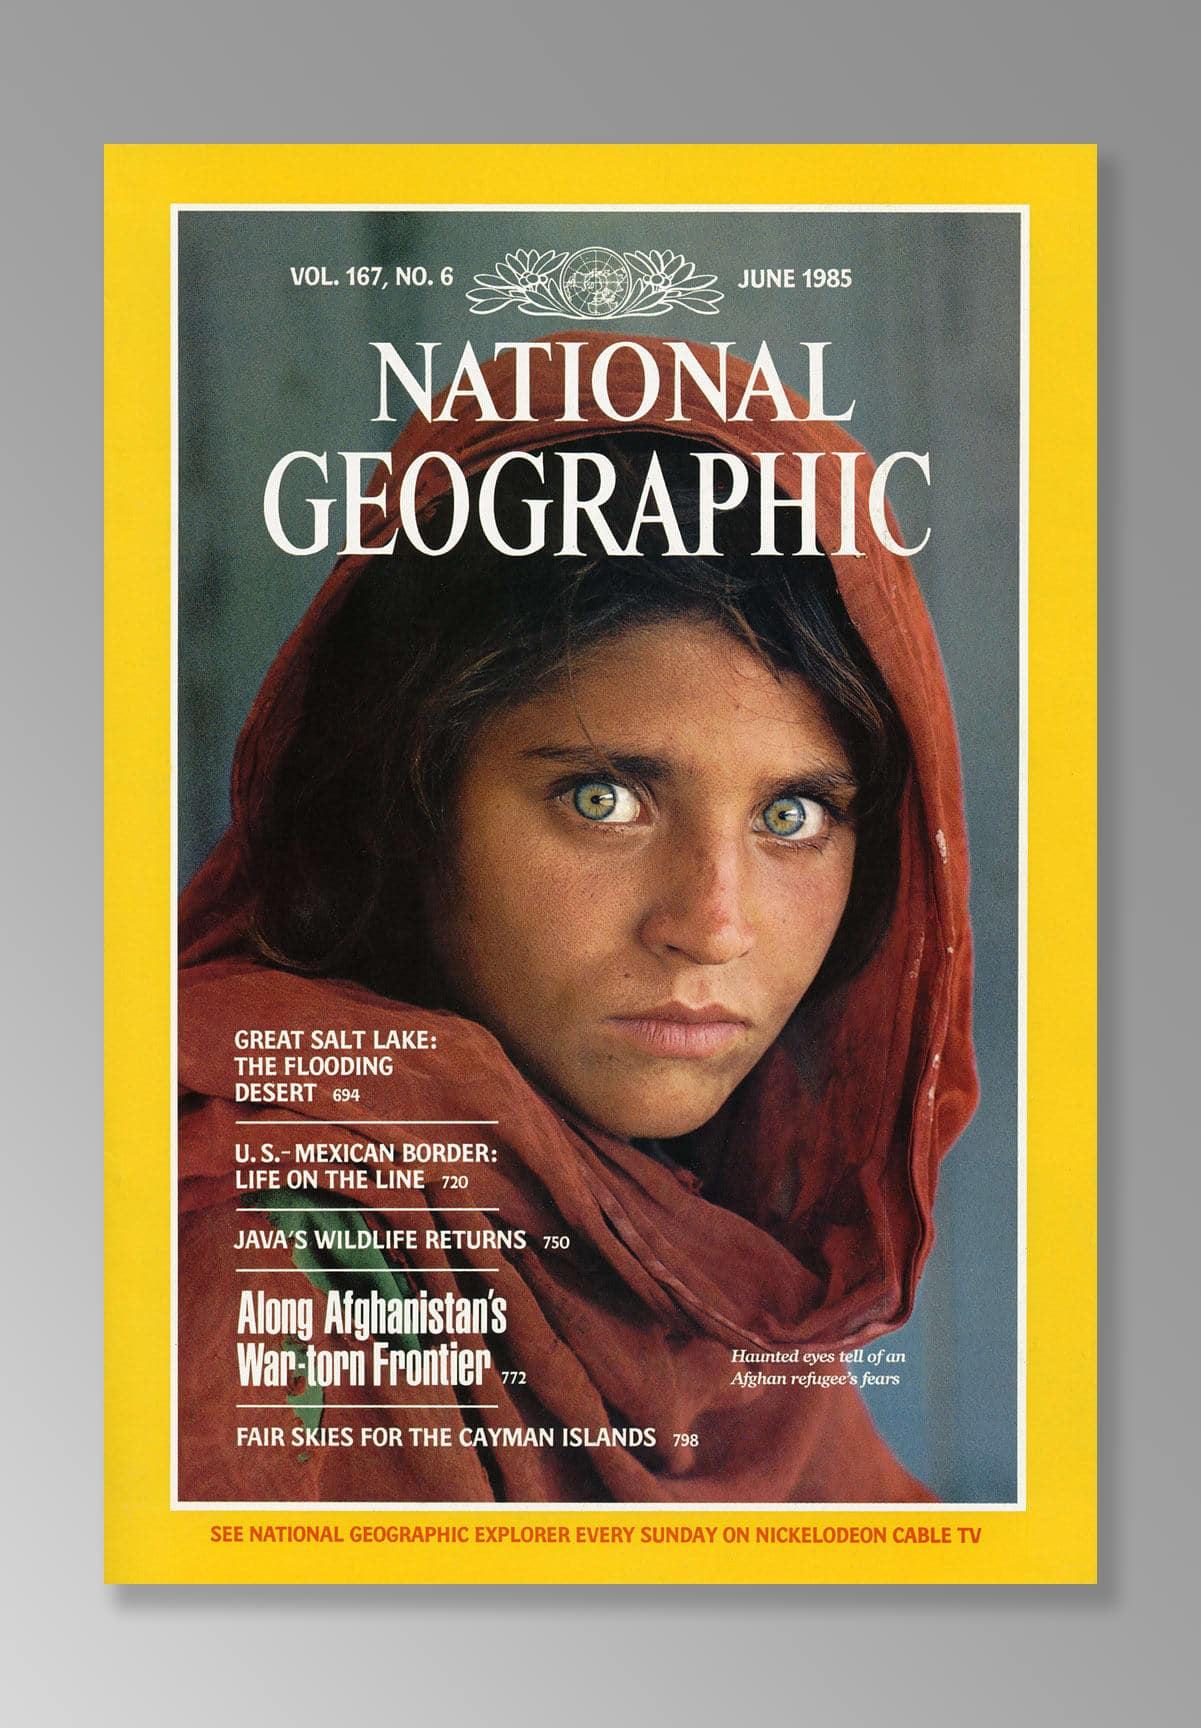 JUNE 1985 – THE AFGHAN GIRL – PHOTOGRAPH BY STEVE MCCURRY